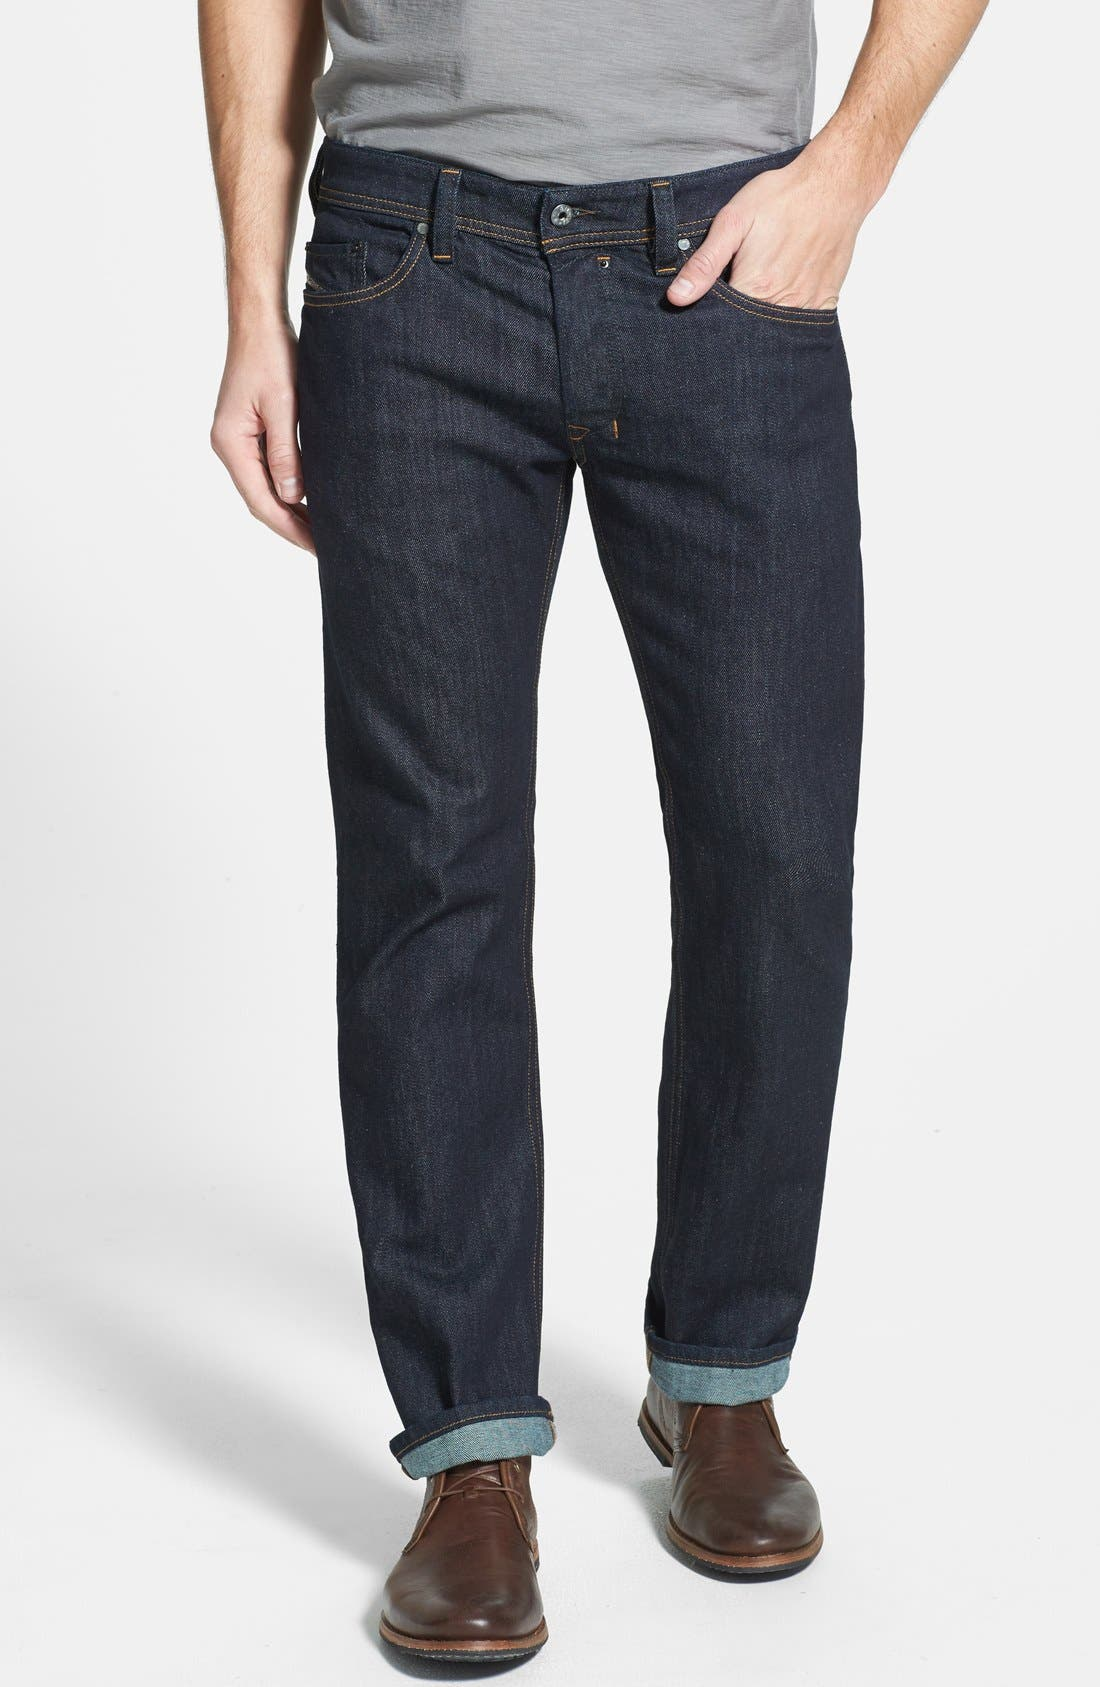 Alternate Image 1 Selected - DIESEL® 'Safado' Slim Fit Selvedge Jeans (0604B)